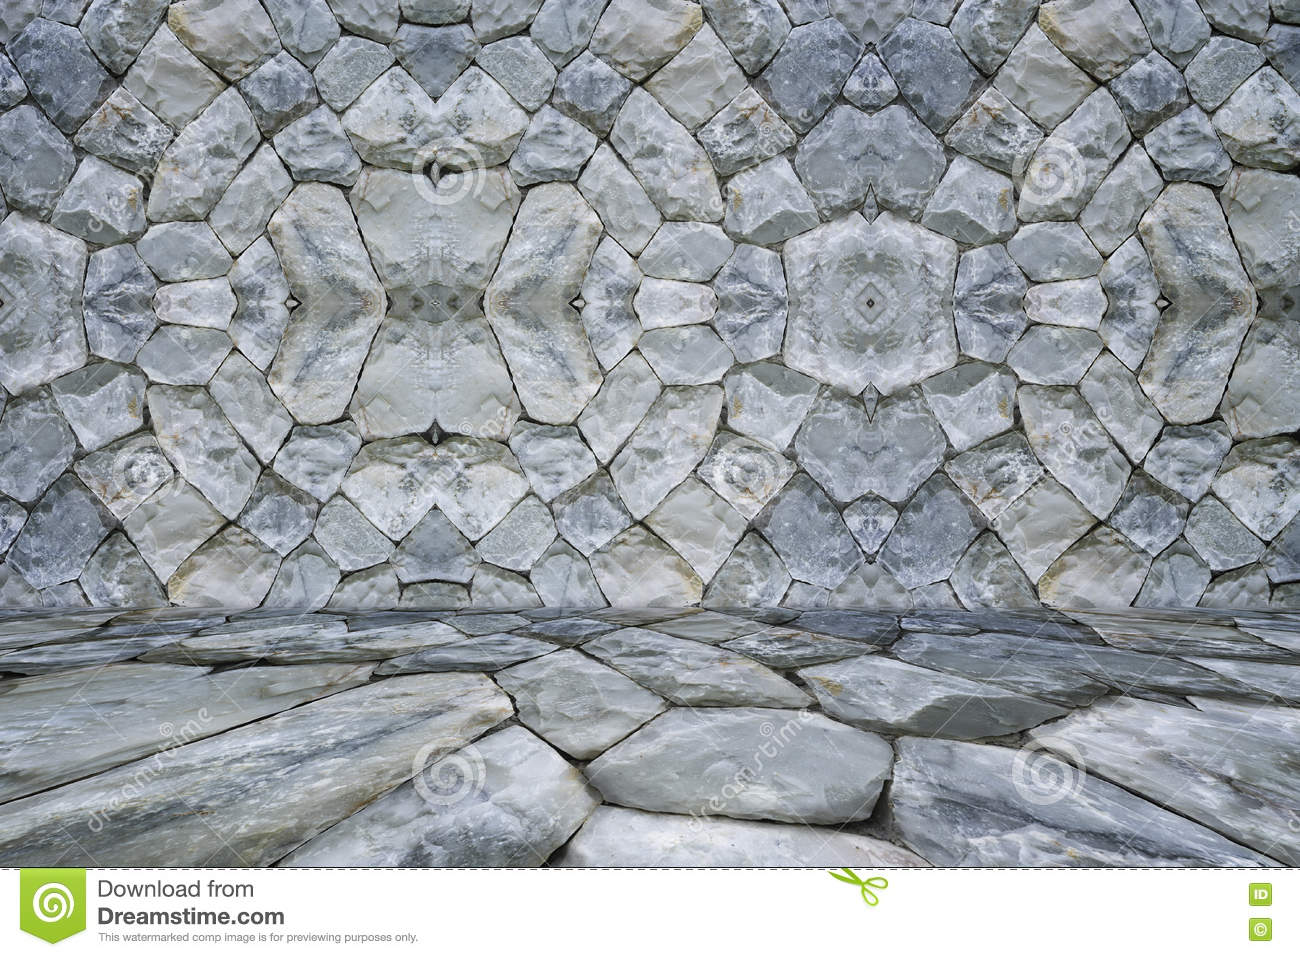 Background image editor - Stone Texture Perspective Floor And Wall Background Can Be Used For Display Or Present Your Products For Editor